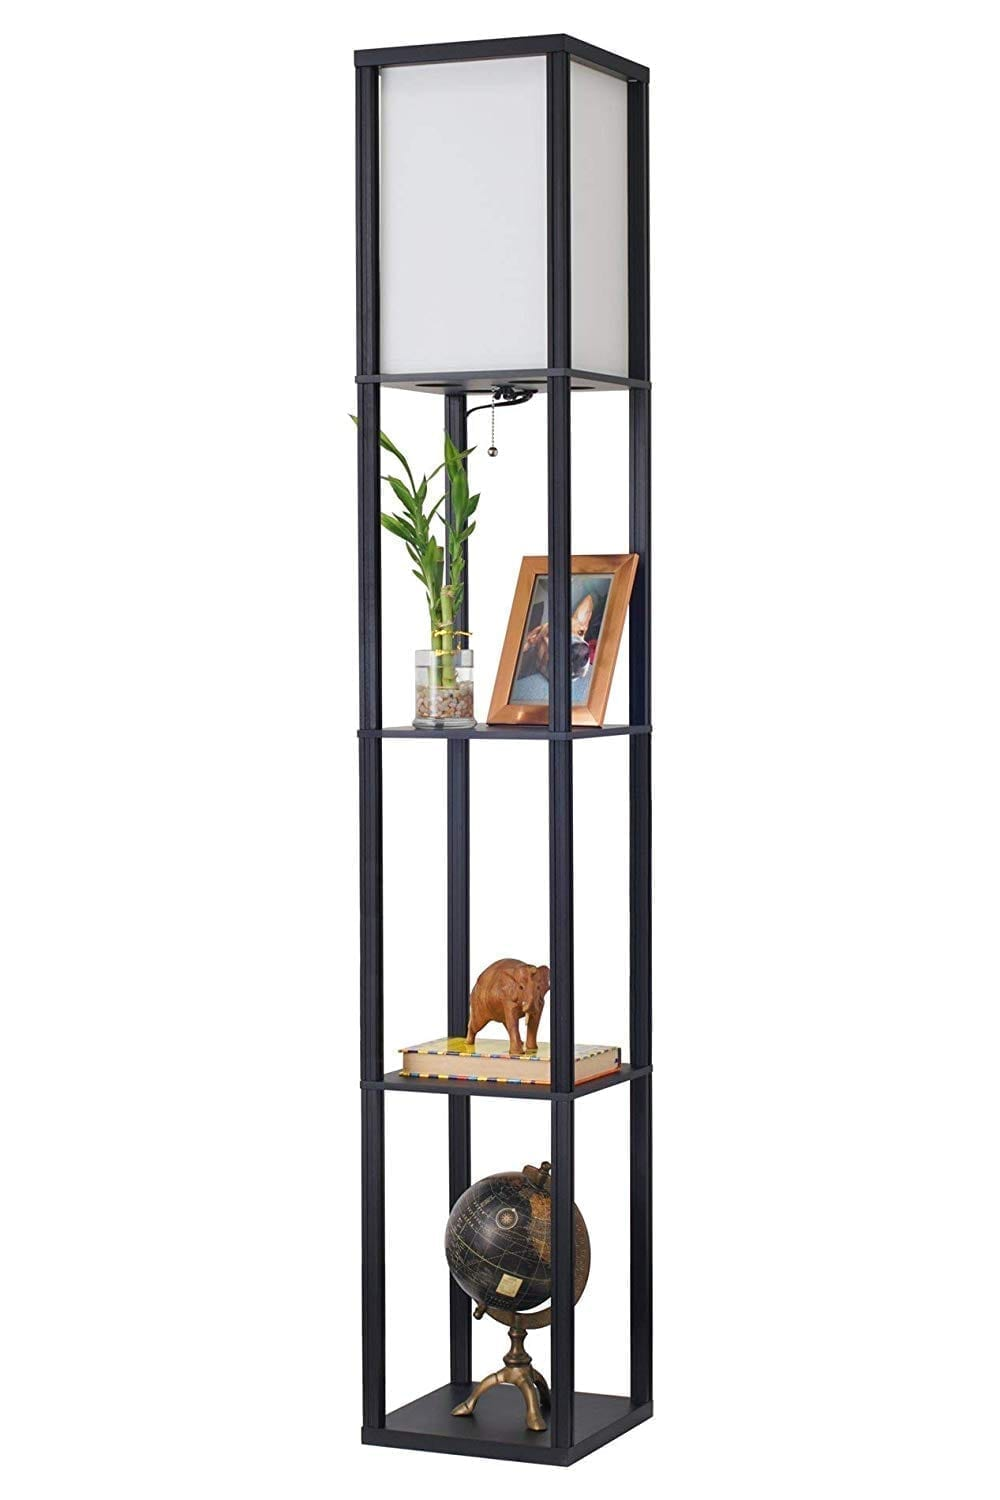 Revel Toro Modern Wood Floor Lamp with Shelves by Kira Home